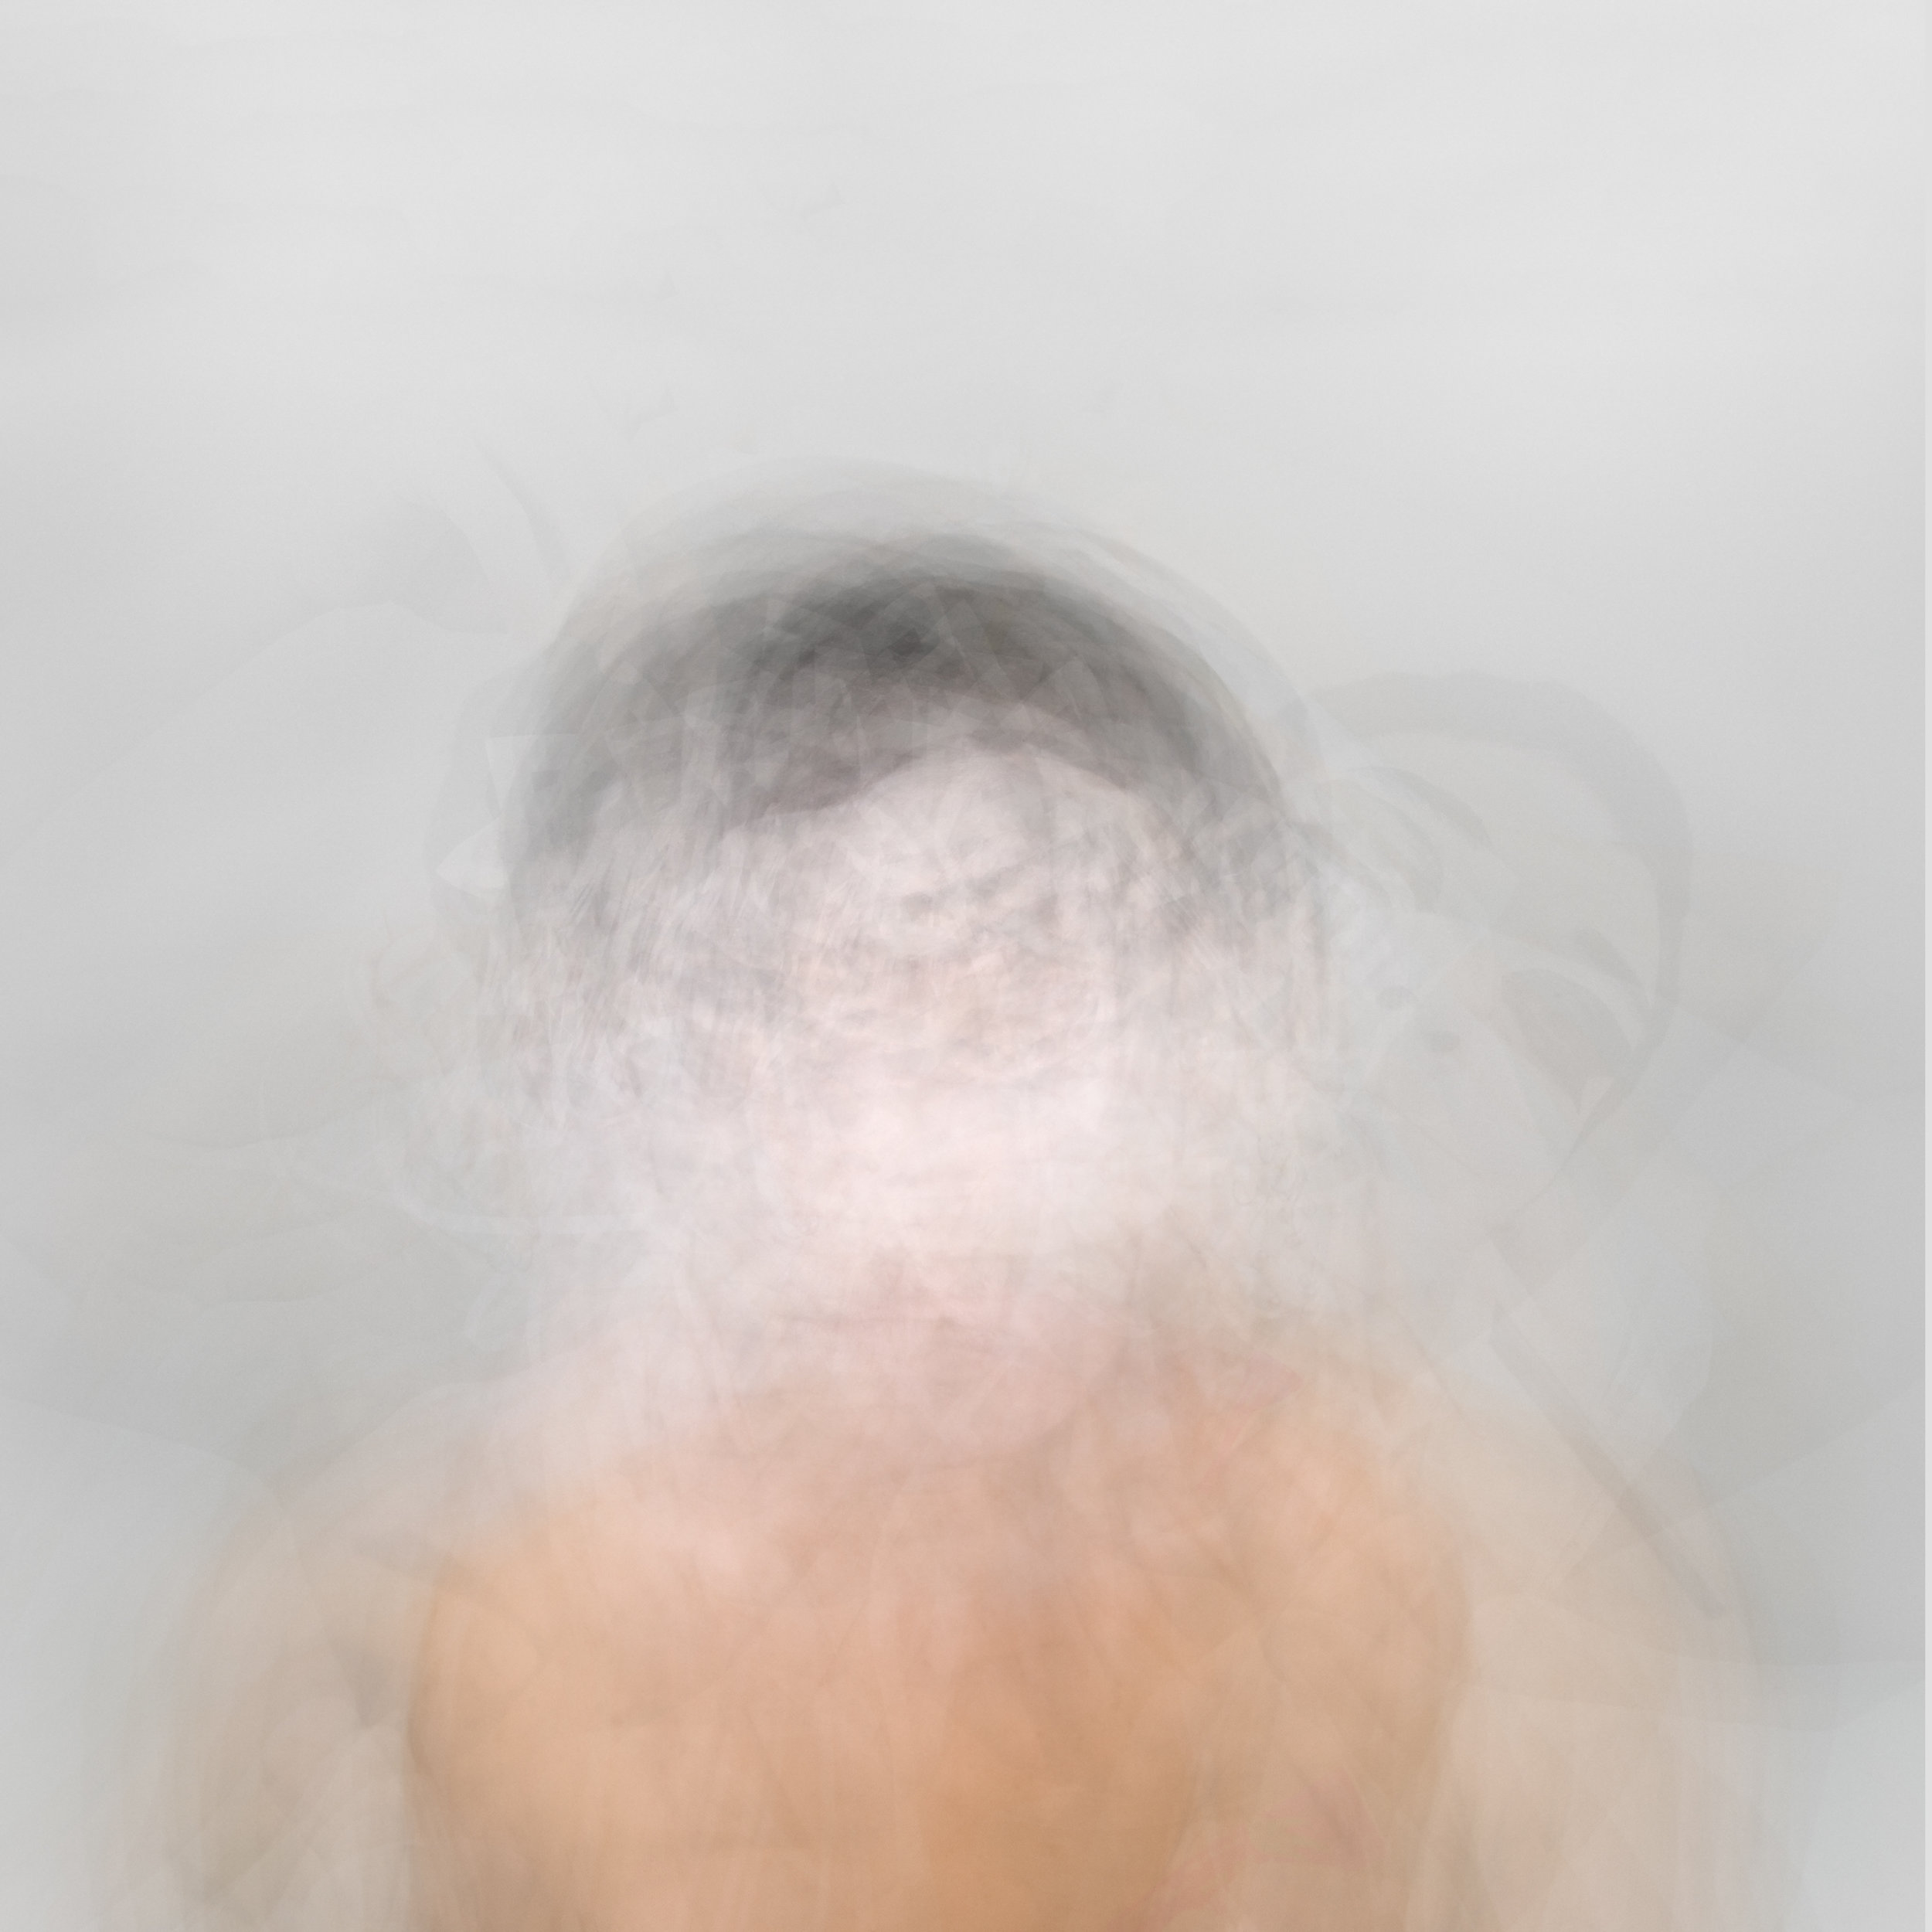 Nada(untitled), 1h 49m, 30x30 inches, pigment print, archival paper, 2017